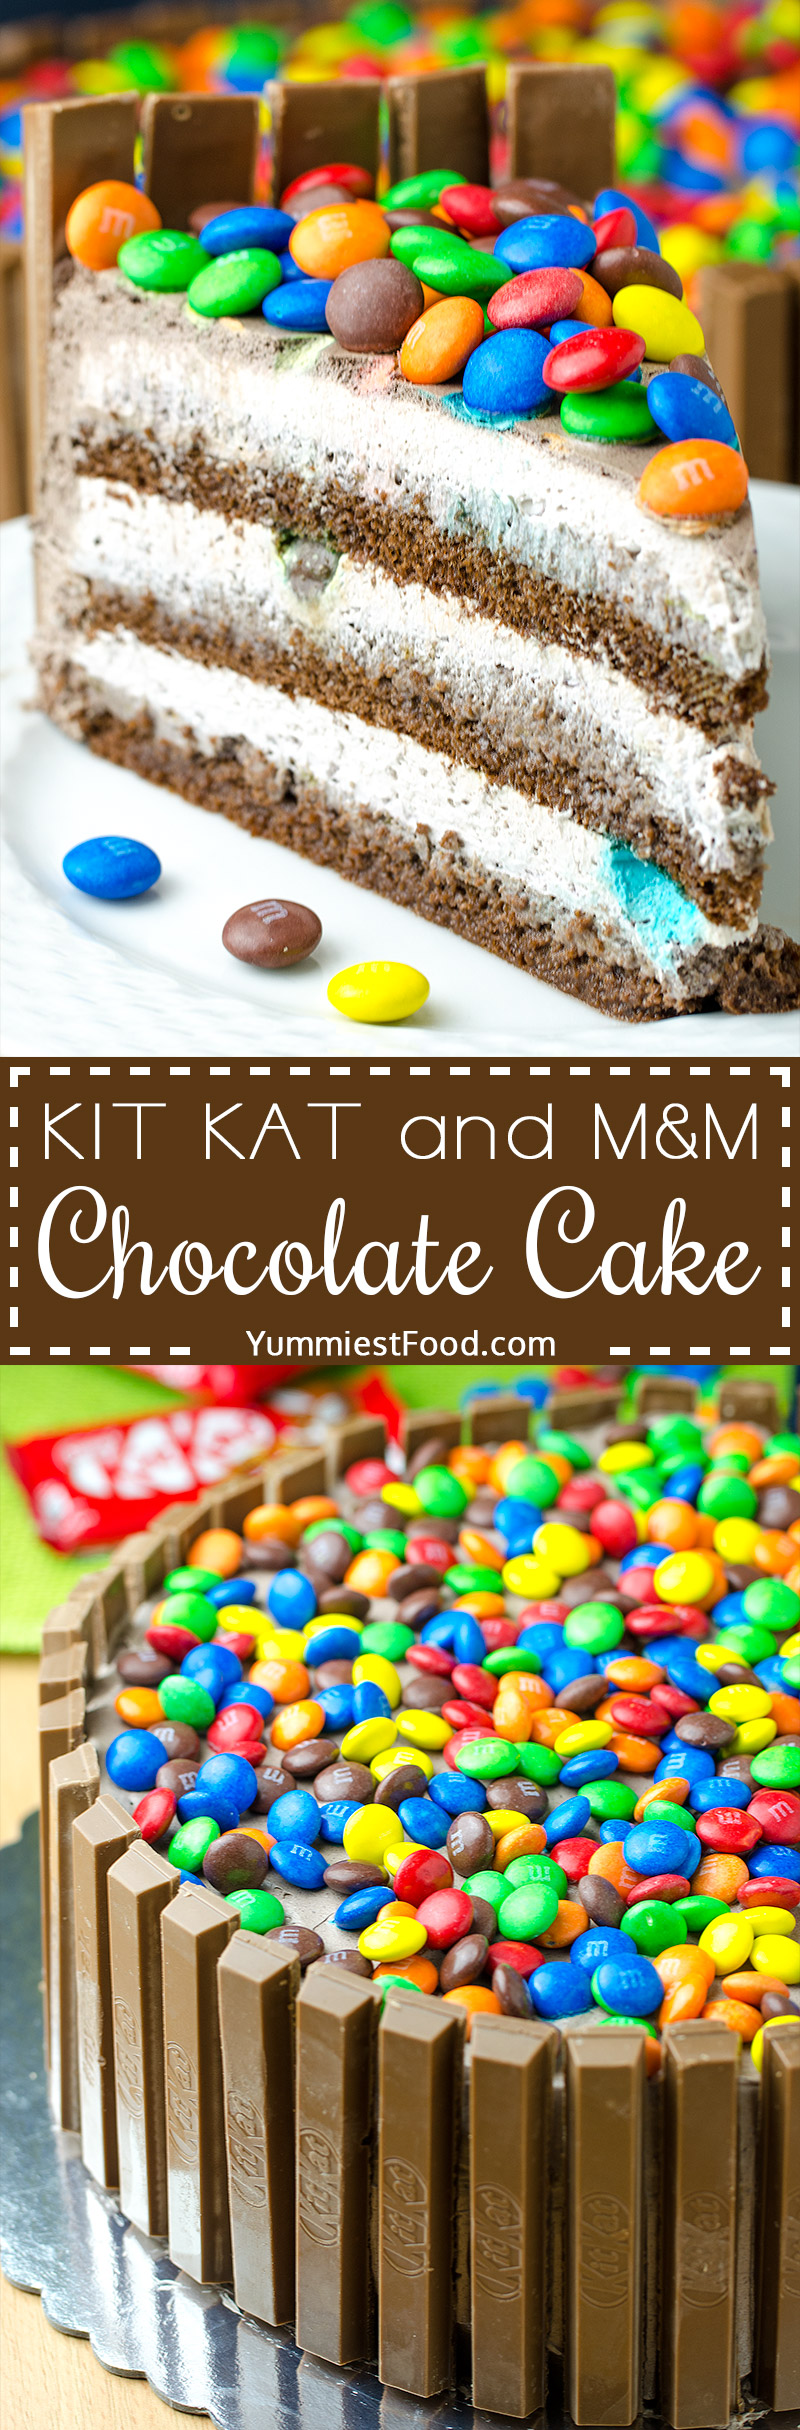 KIT KAT and M&M chocolate cake with peanut butter frosting - This cake is so good and easy to make. Perfect for birthdays and other celebrations.